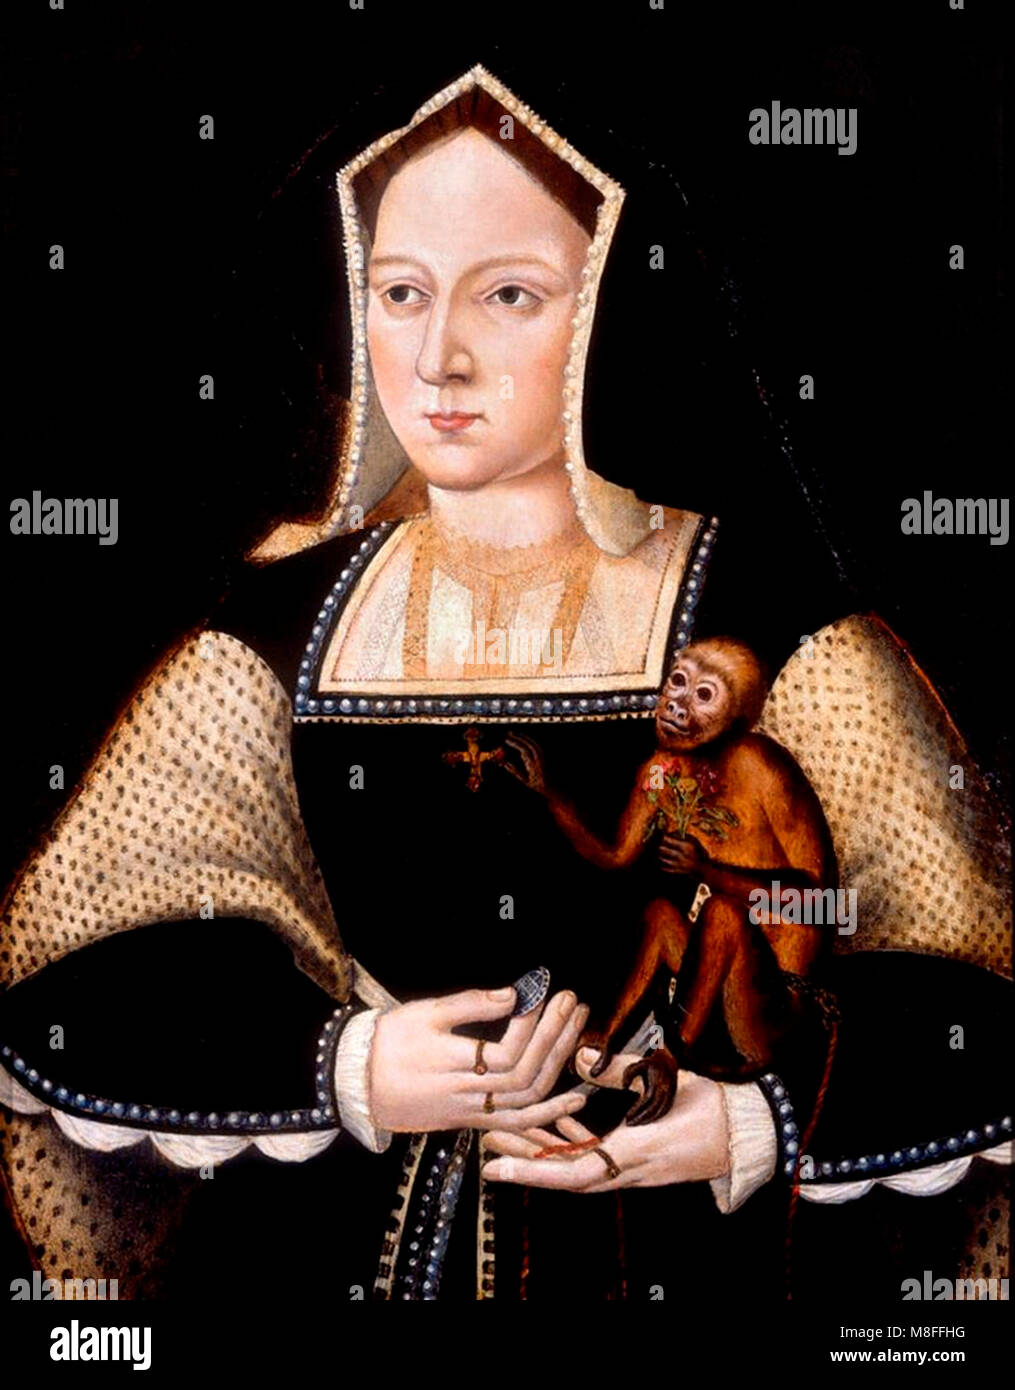 Catherine of Aragon. Portrait of the first wife of King Henry VIII of England holding a monkey, painting by Lucas - Stock Image